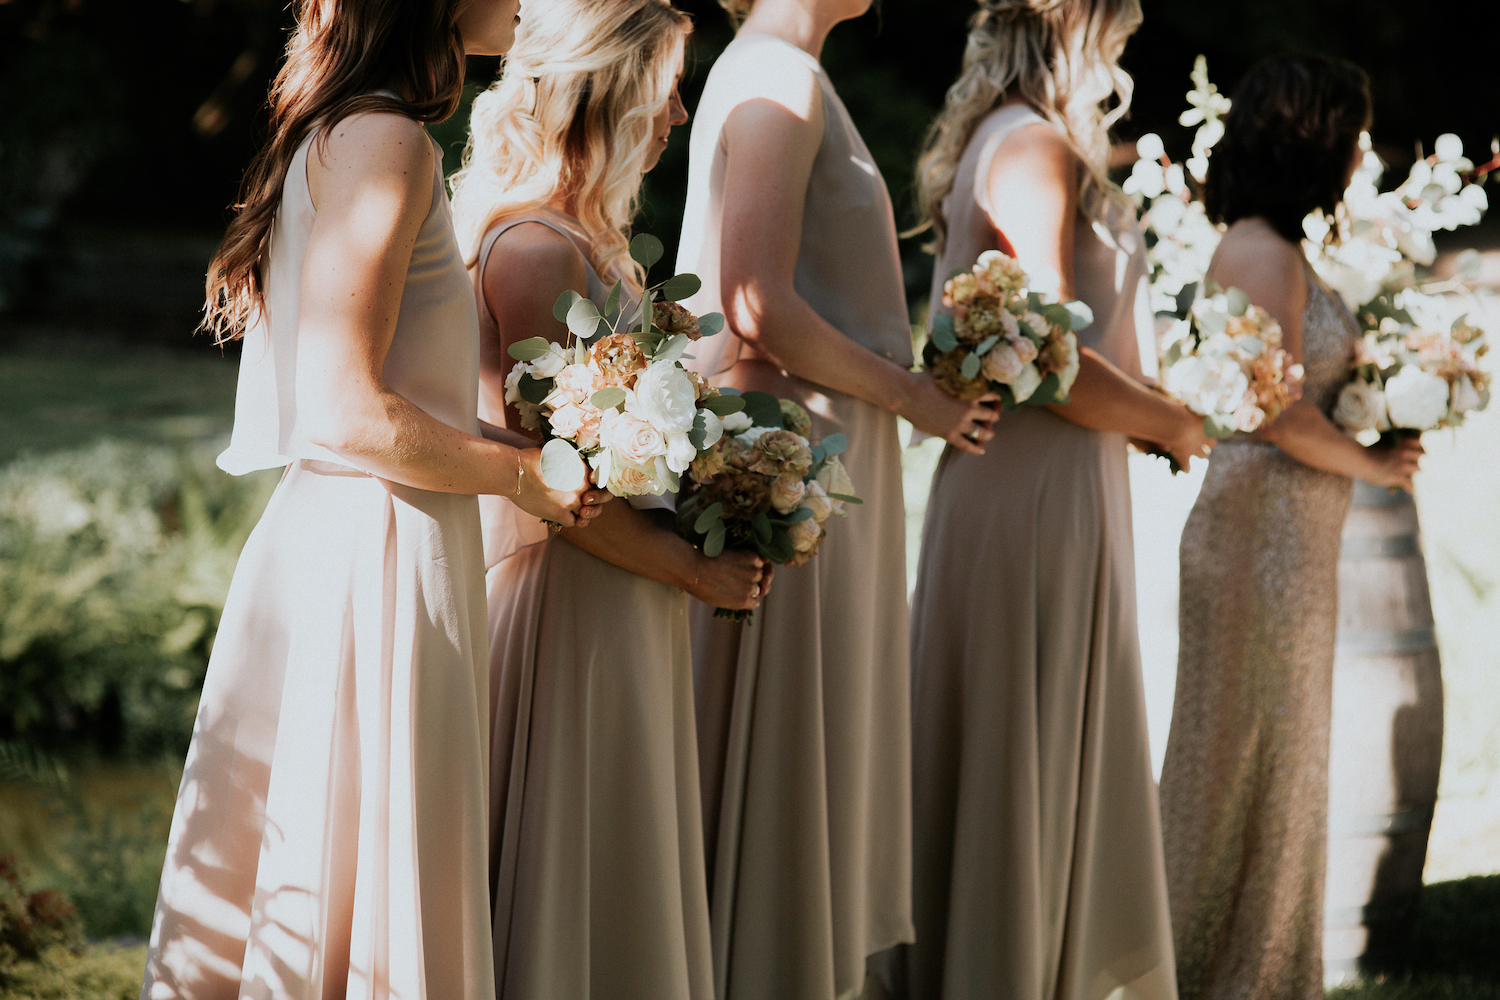 Wild Bloom Floral - Rachel Birkhofer Photography - Jessica and Phil - Real Wedding - Seattle 9.jpeg